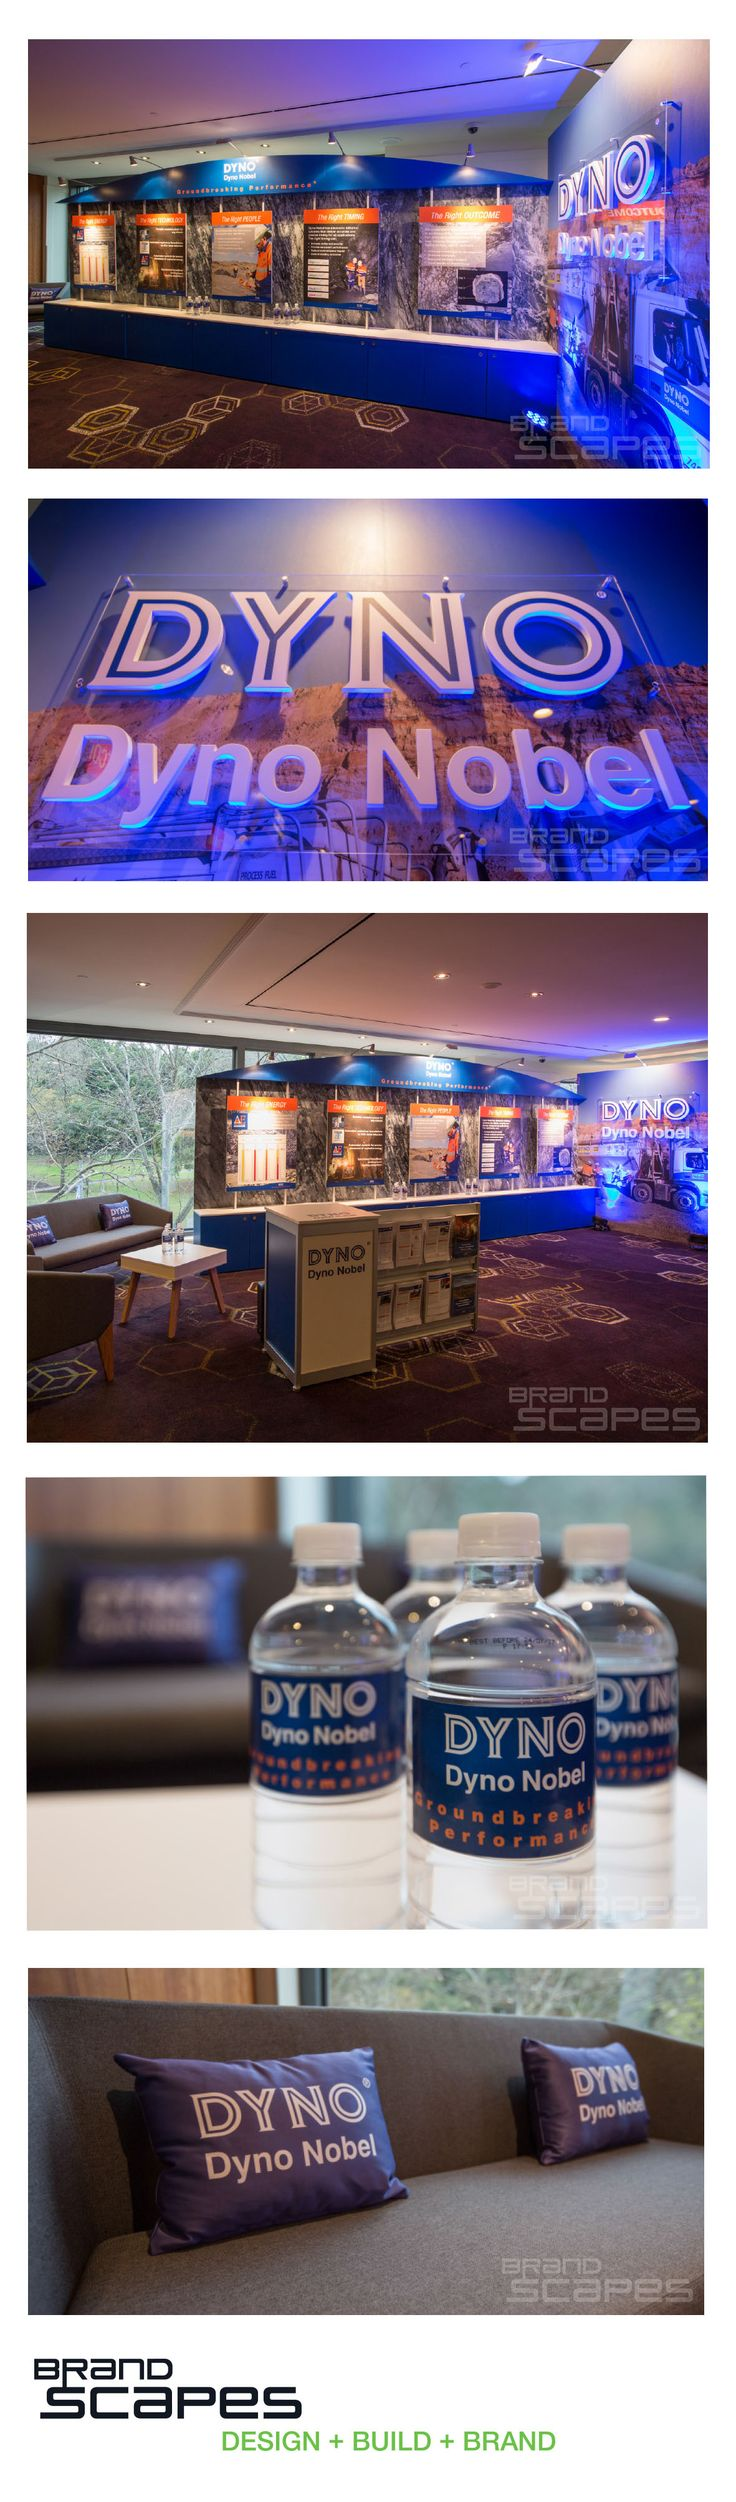 A dynamic branded space was created within the constraints of a hotel conference room.